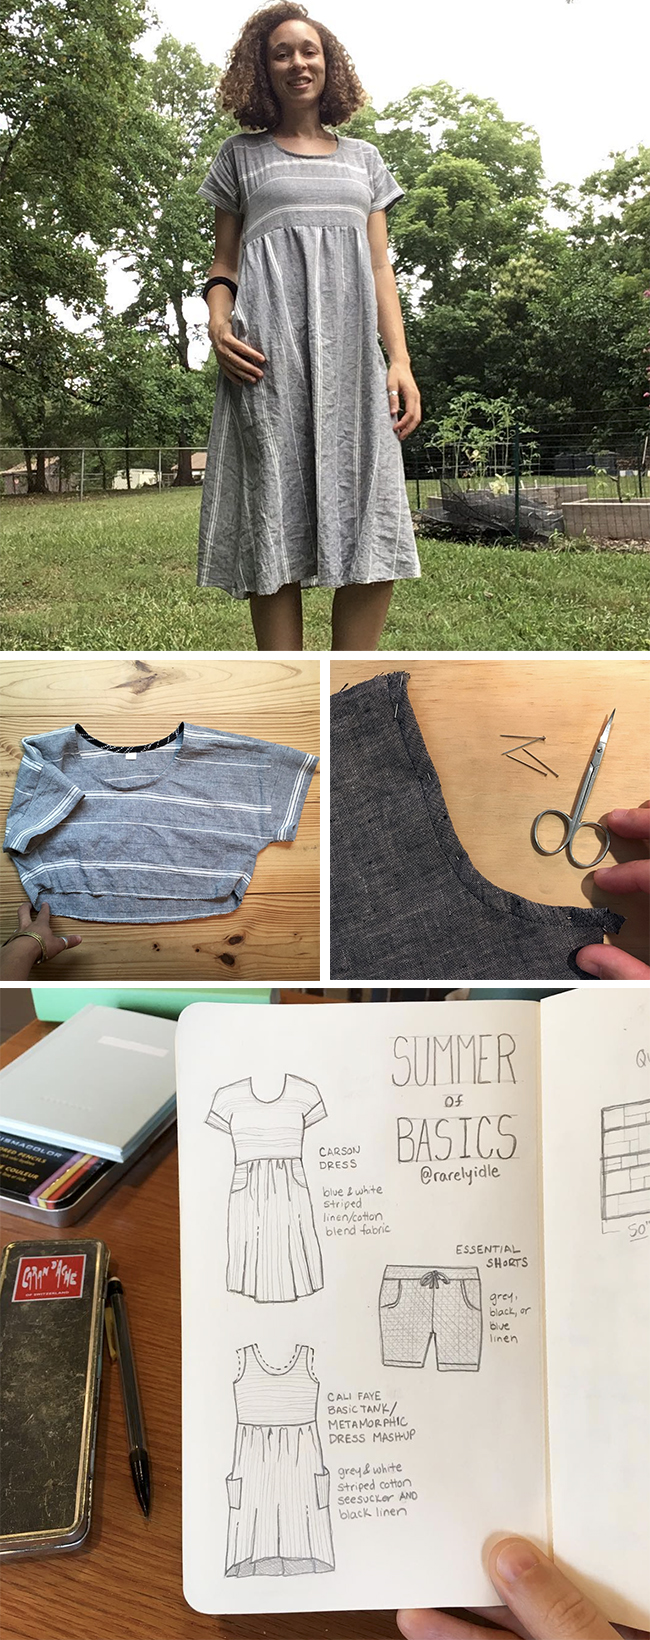 Summer of Basics July winners: The WIPs